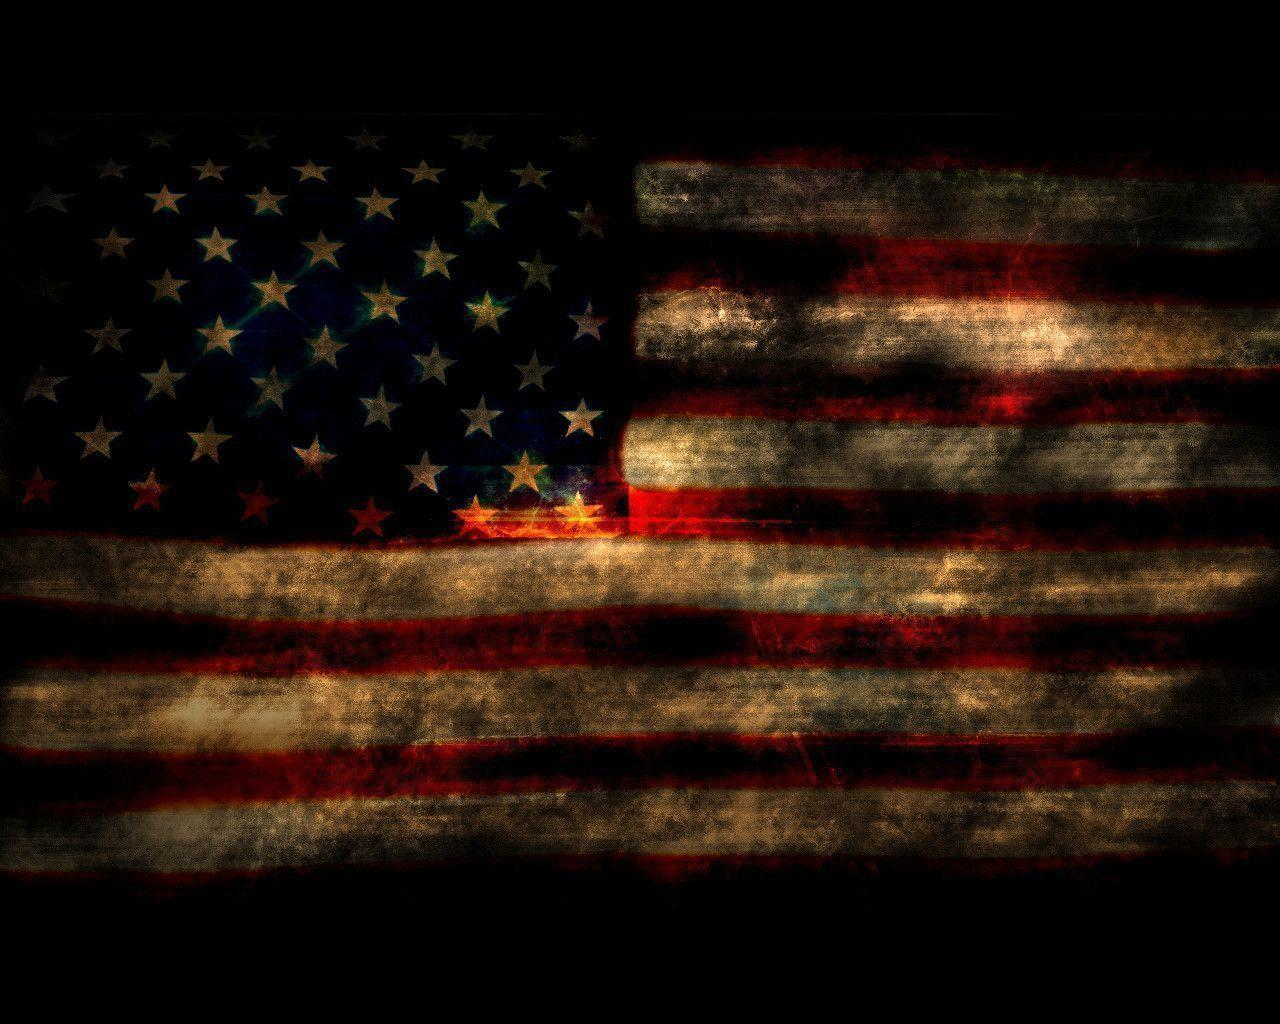 usa flag old style by jann1c on DeviantArt